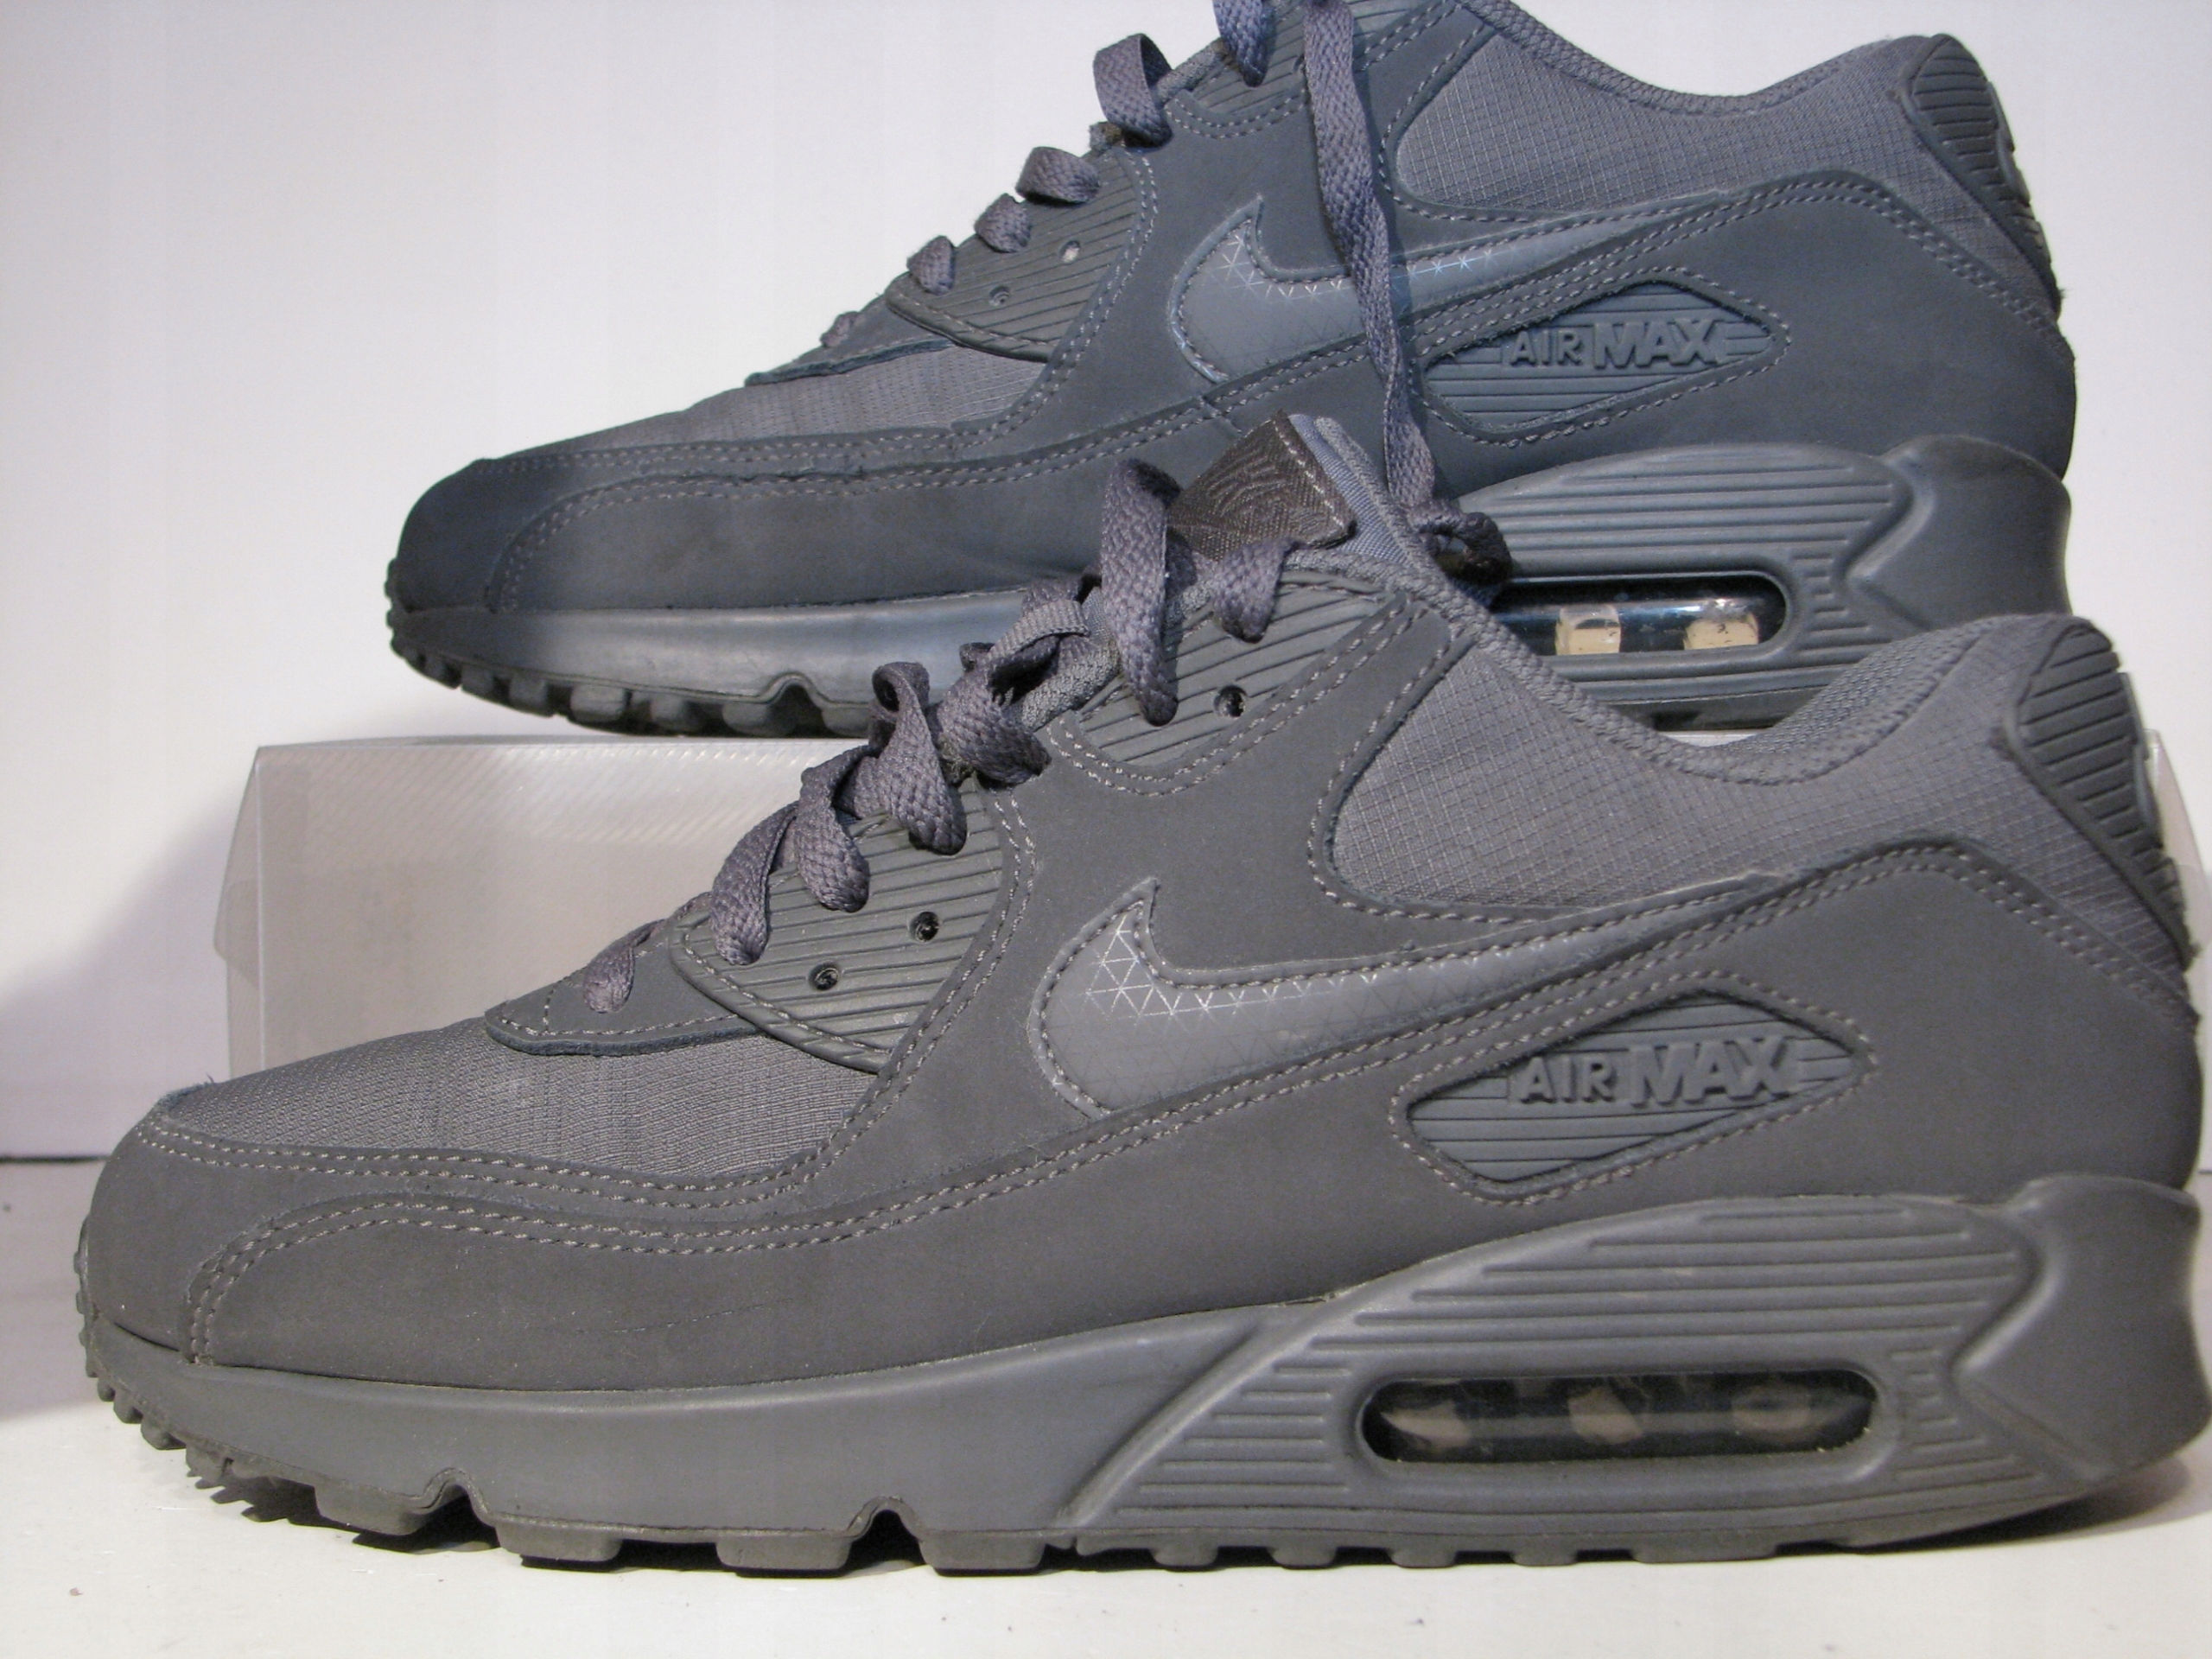 Nike Air Max 90 EZ Sneaker for Men, Green, 47 EU: Buy Online